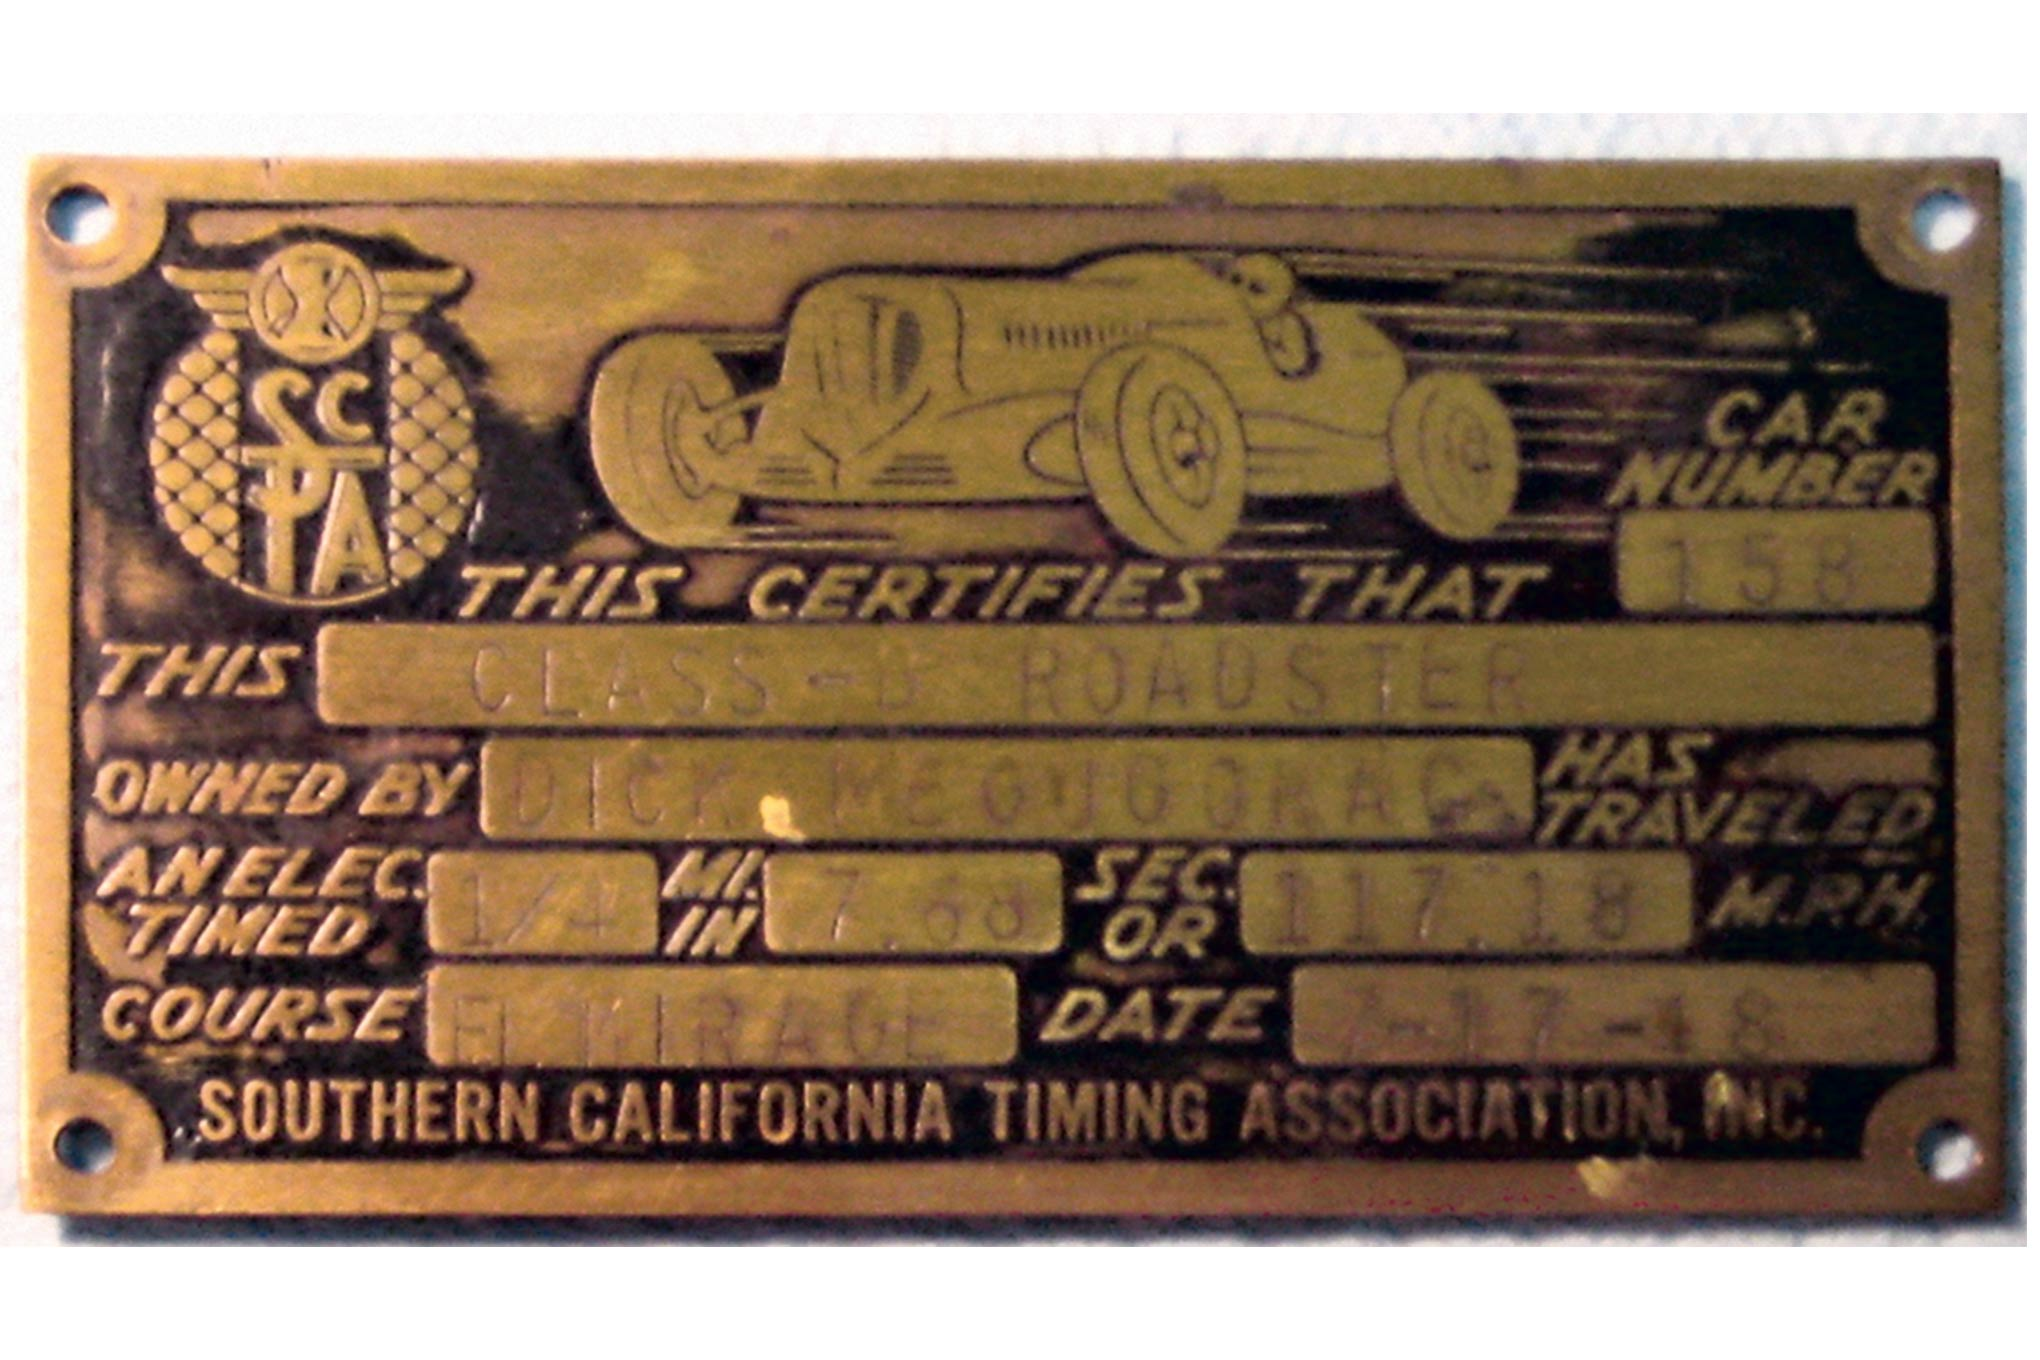 Dick's timing tag from July 17, 1948 from the SCTA at the El Mirage course shows a time in his roadster of 7.68 seconds at 117.18 mph in the ¼-mile in his roadster.